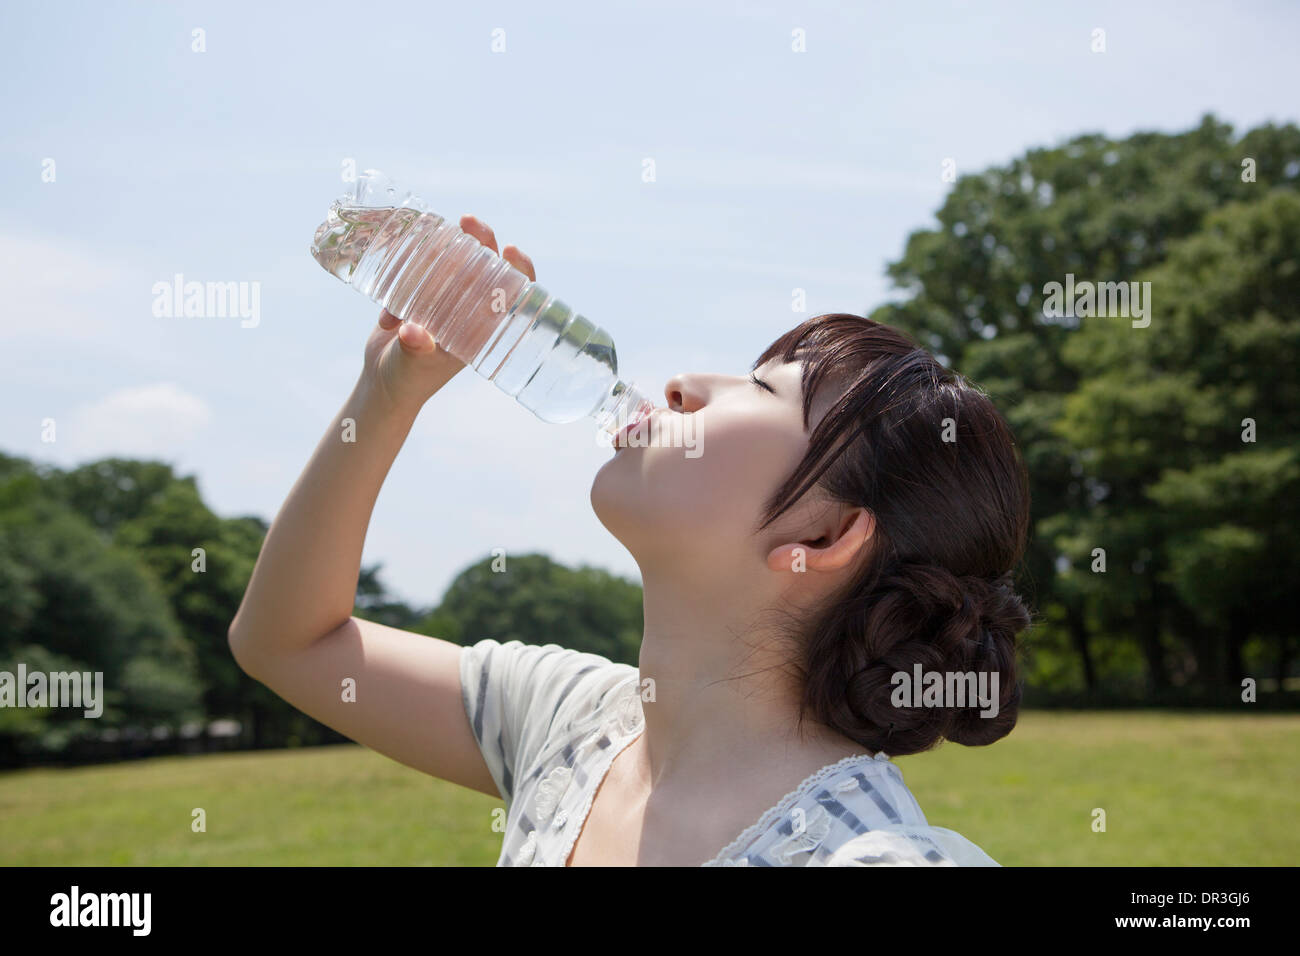 Young woman drinking water in a bottle - Stock Image